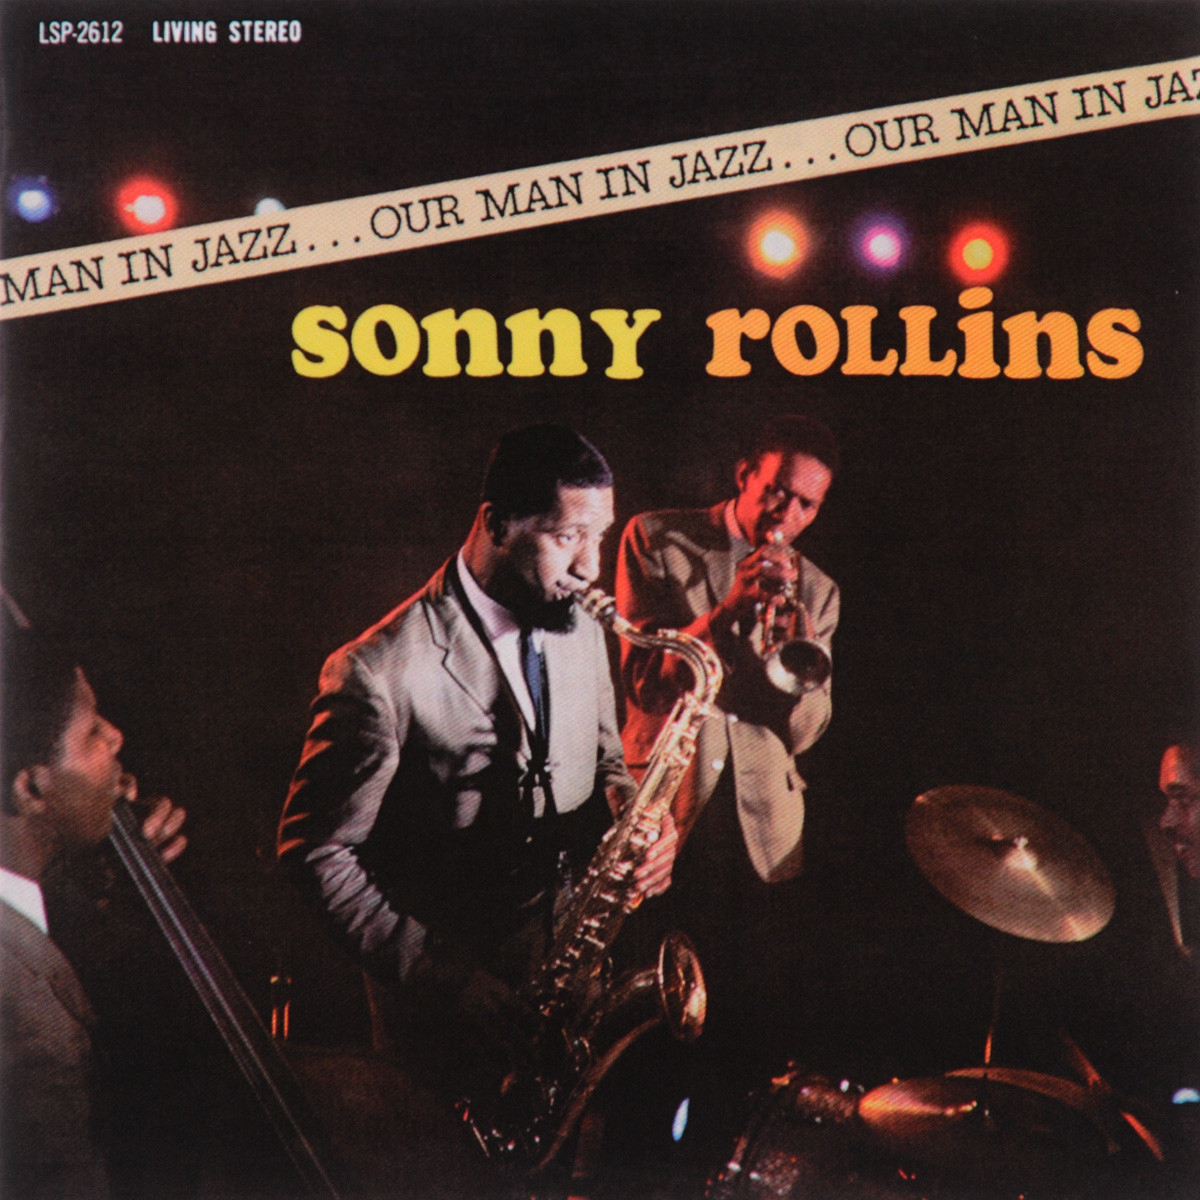 Сонни Роллинз Sonny Rollins. Our Man In Jazz sonny rollins sonny rollins volume 1 180 gr